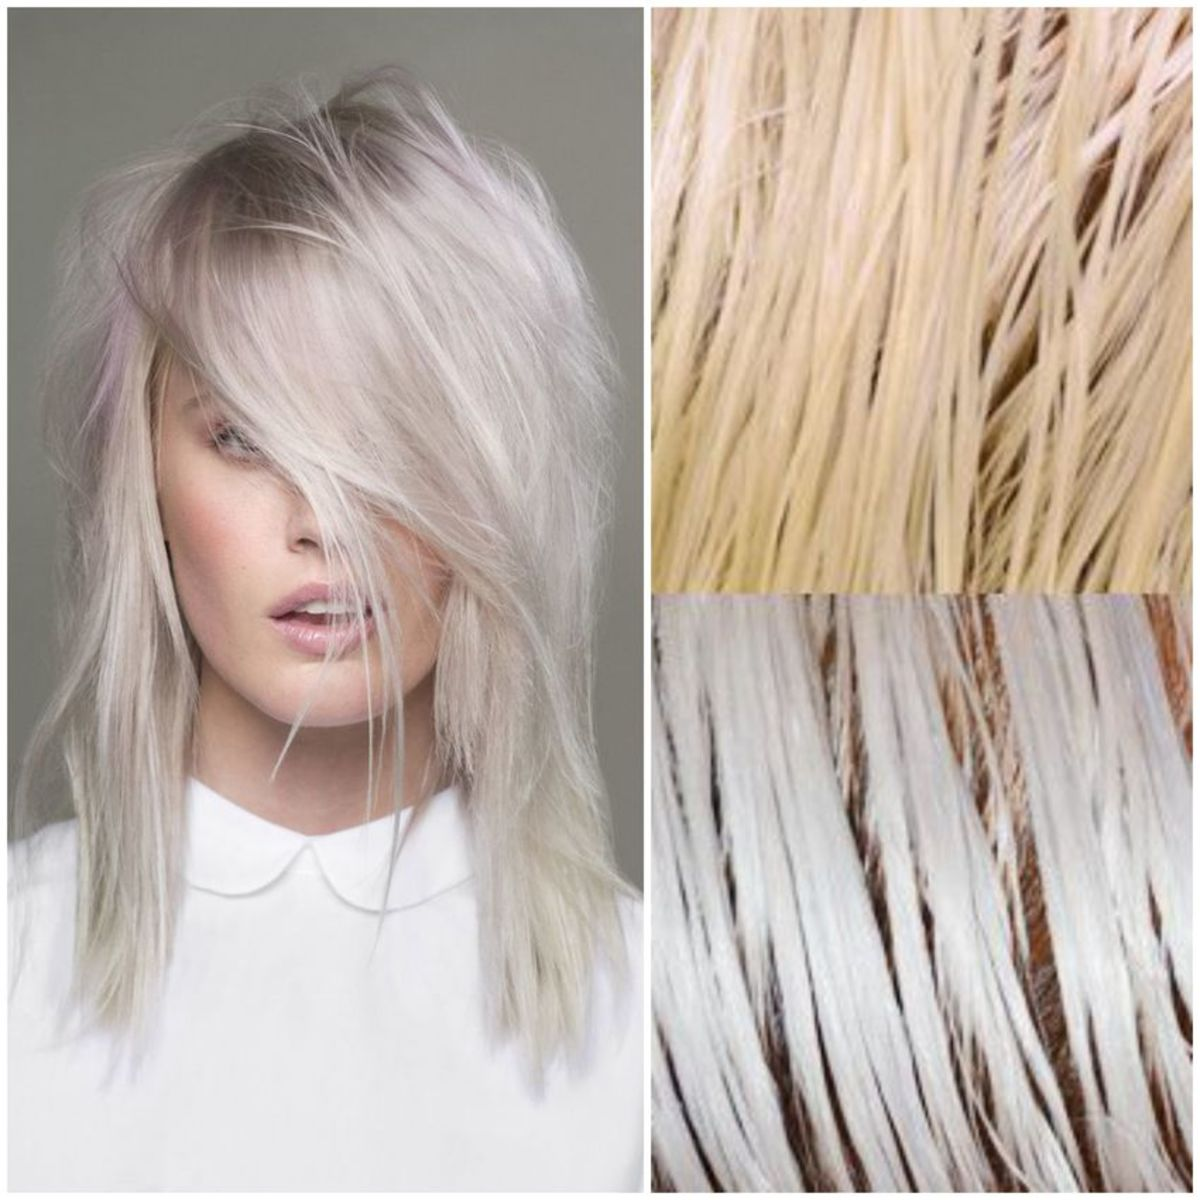 How To Remove Brassy Tones From Bleached Blonde Hair Hubpages